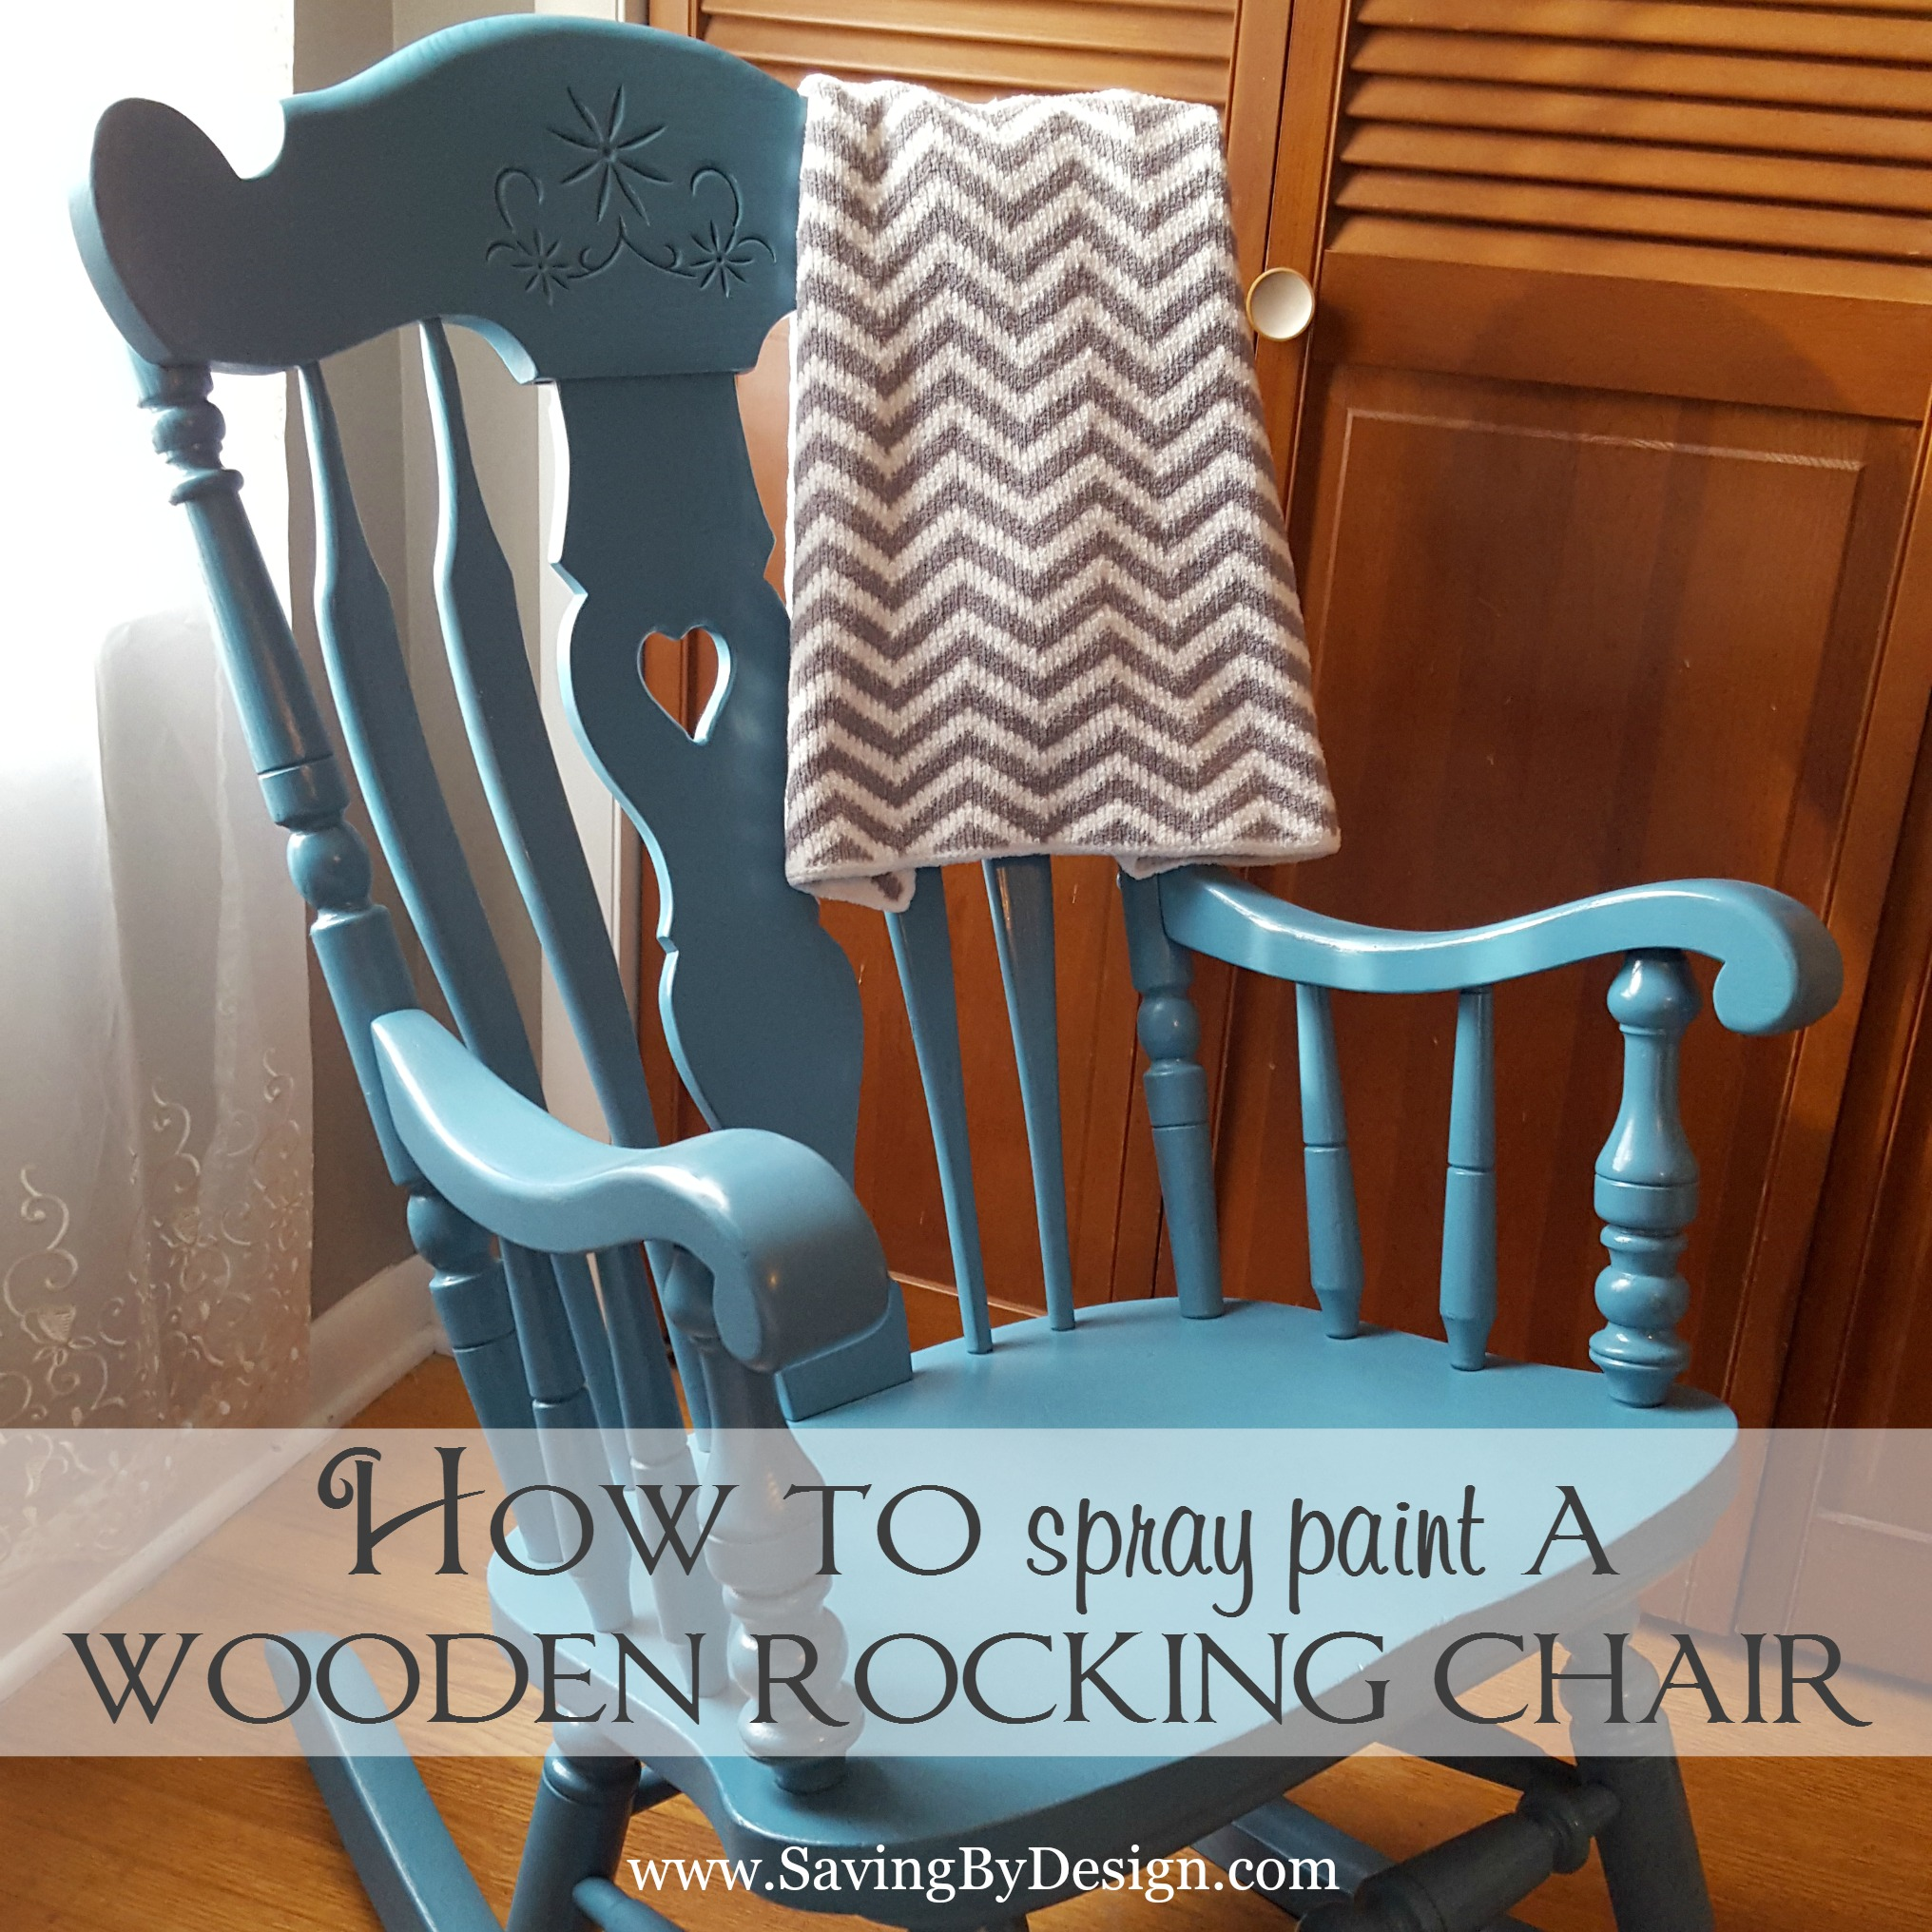 how to spray paint a wooden rocking chair it 39 s less than 10. Black Bedroom Furniture Sets. Home Design Ideas